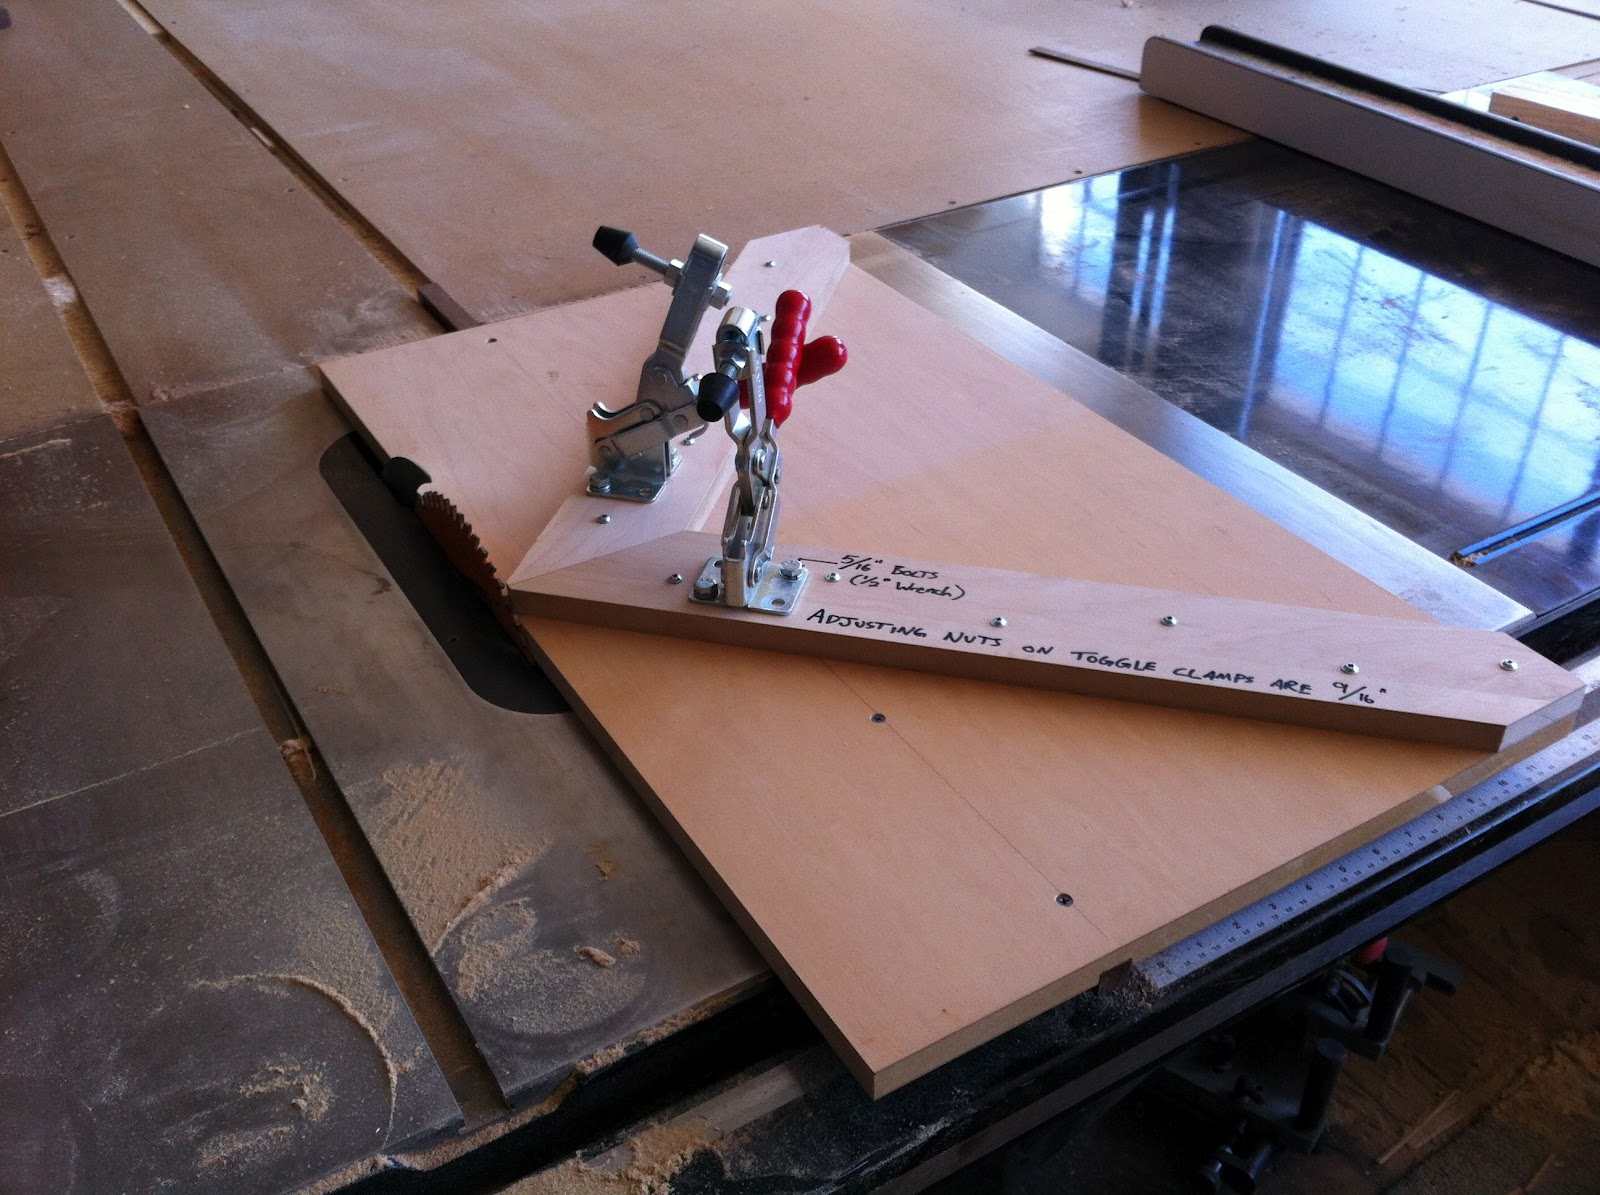 45 Degree Table Saw Sled Related Keywords Suggestions 45 Degree Table Saw Sled Long Tail